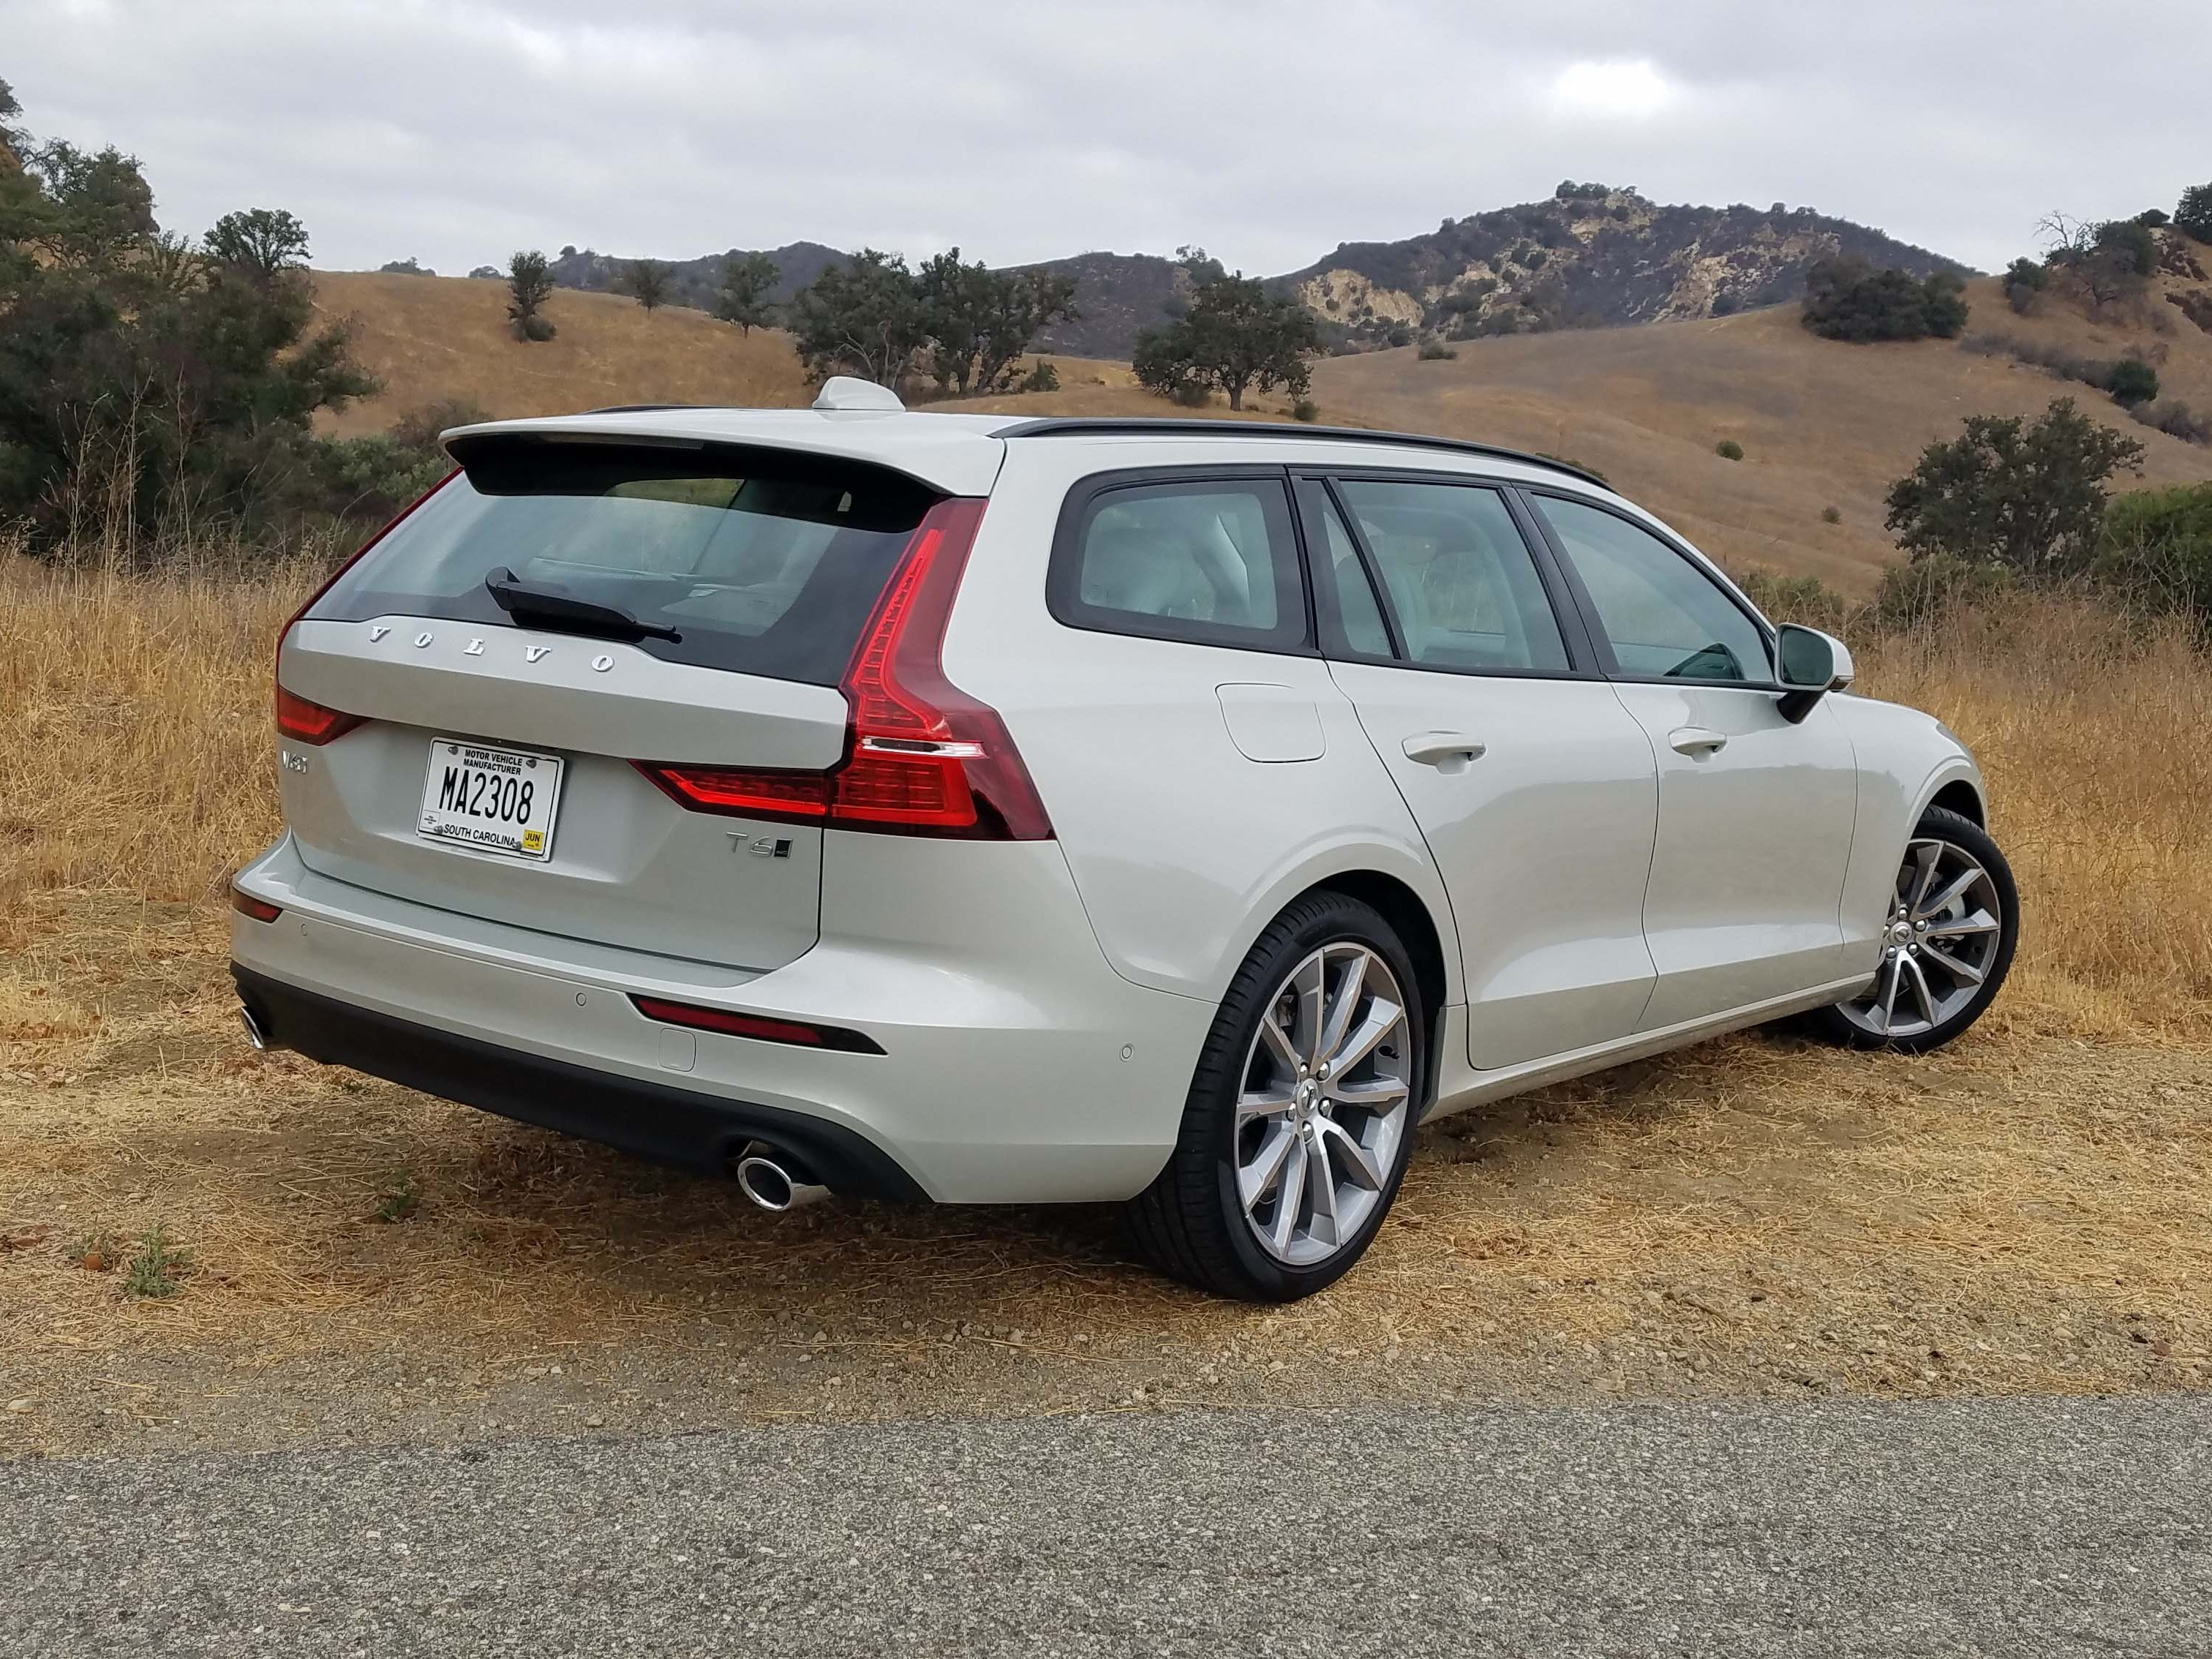 You'll know it by the big, rear, bat-wing taillights: The 2019 Volvo V60 wagon.